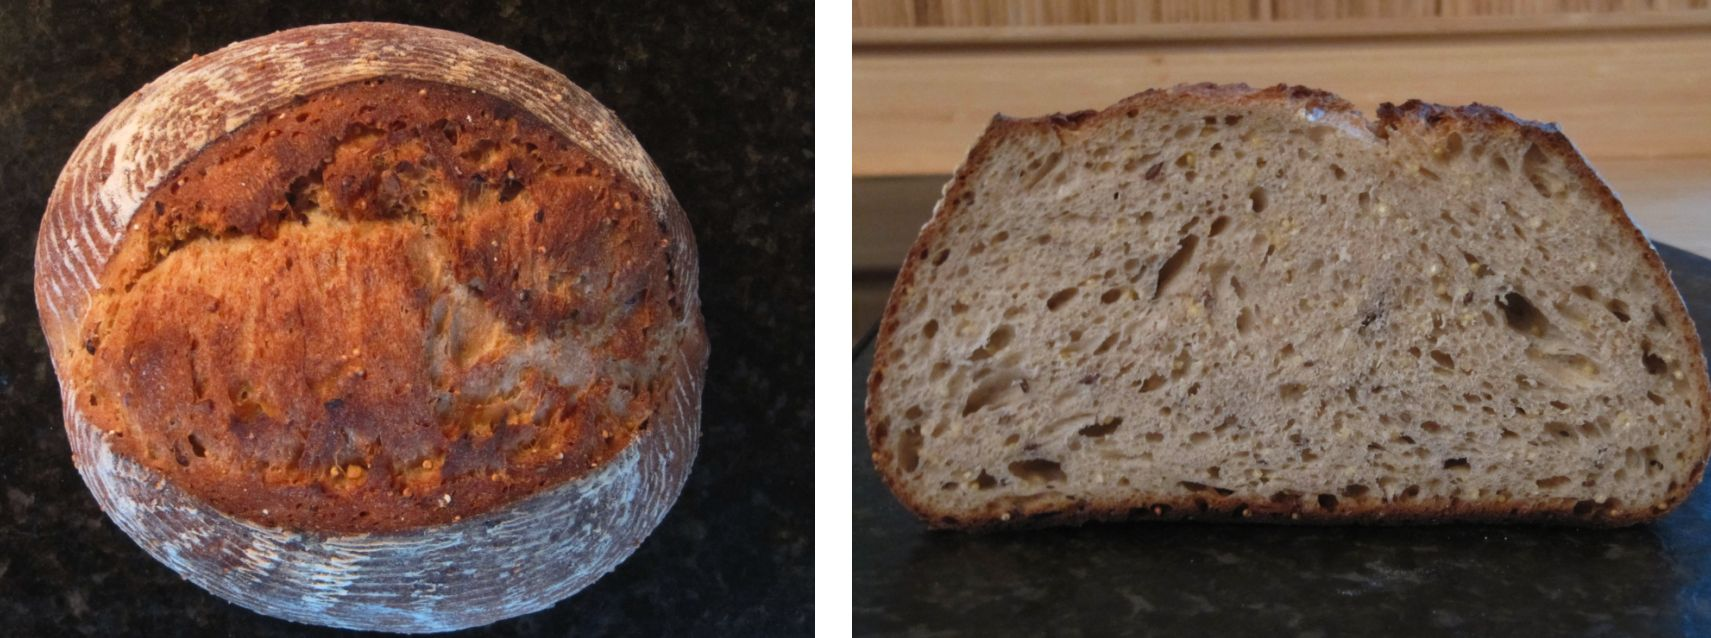 Crusty sourdough bread